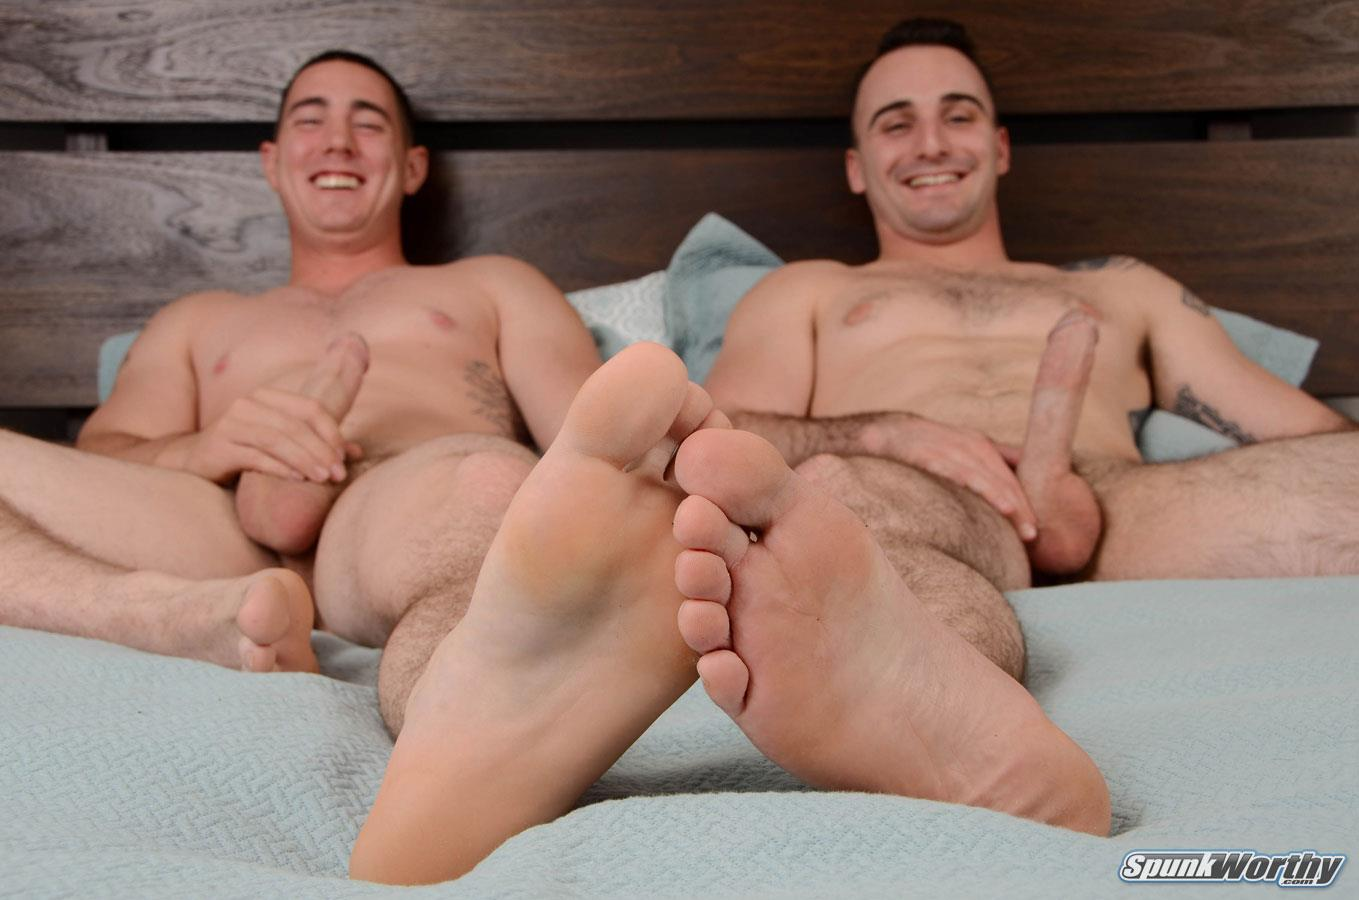 Hard buddies shave each others ass was there